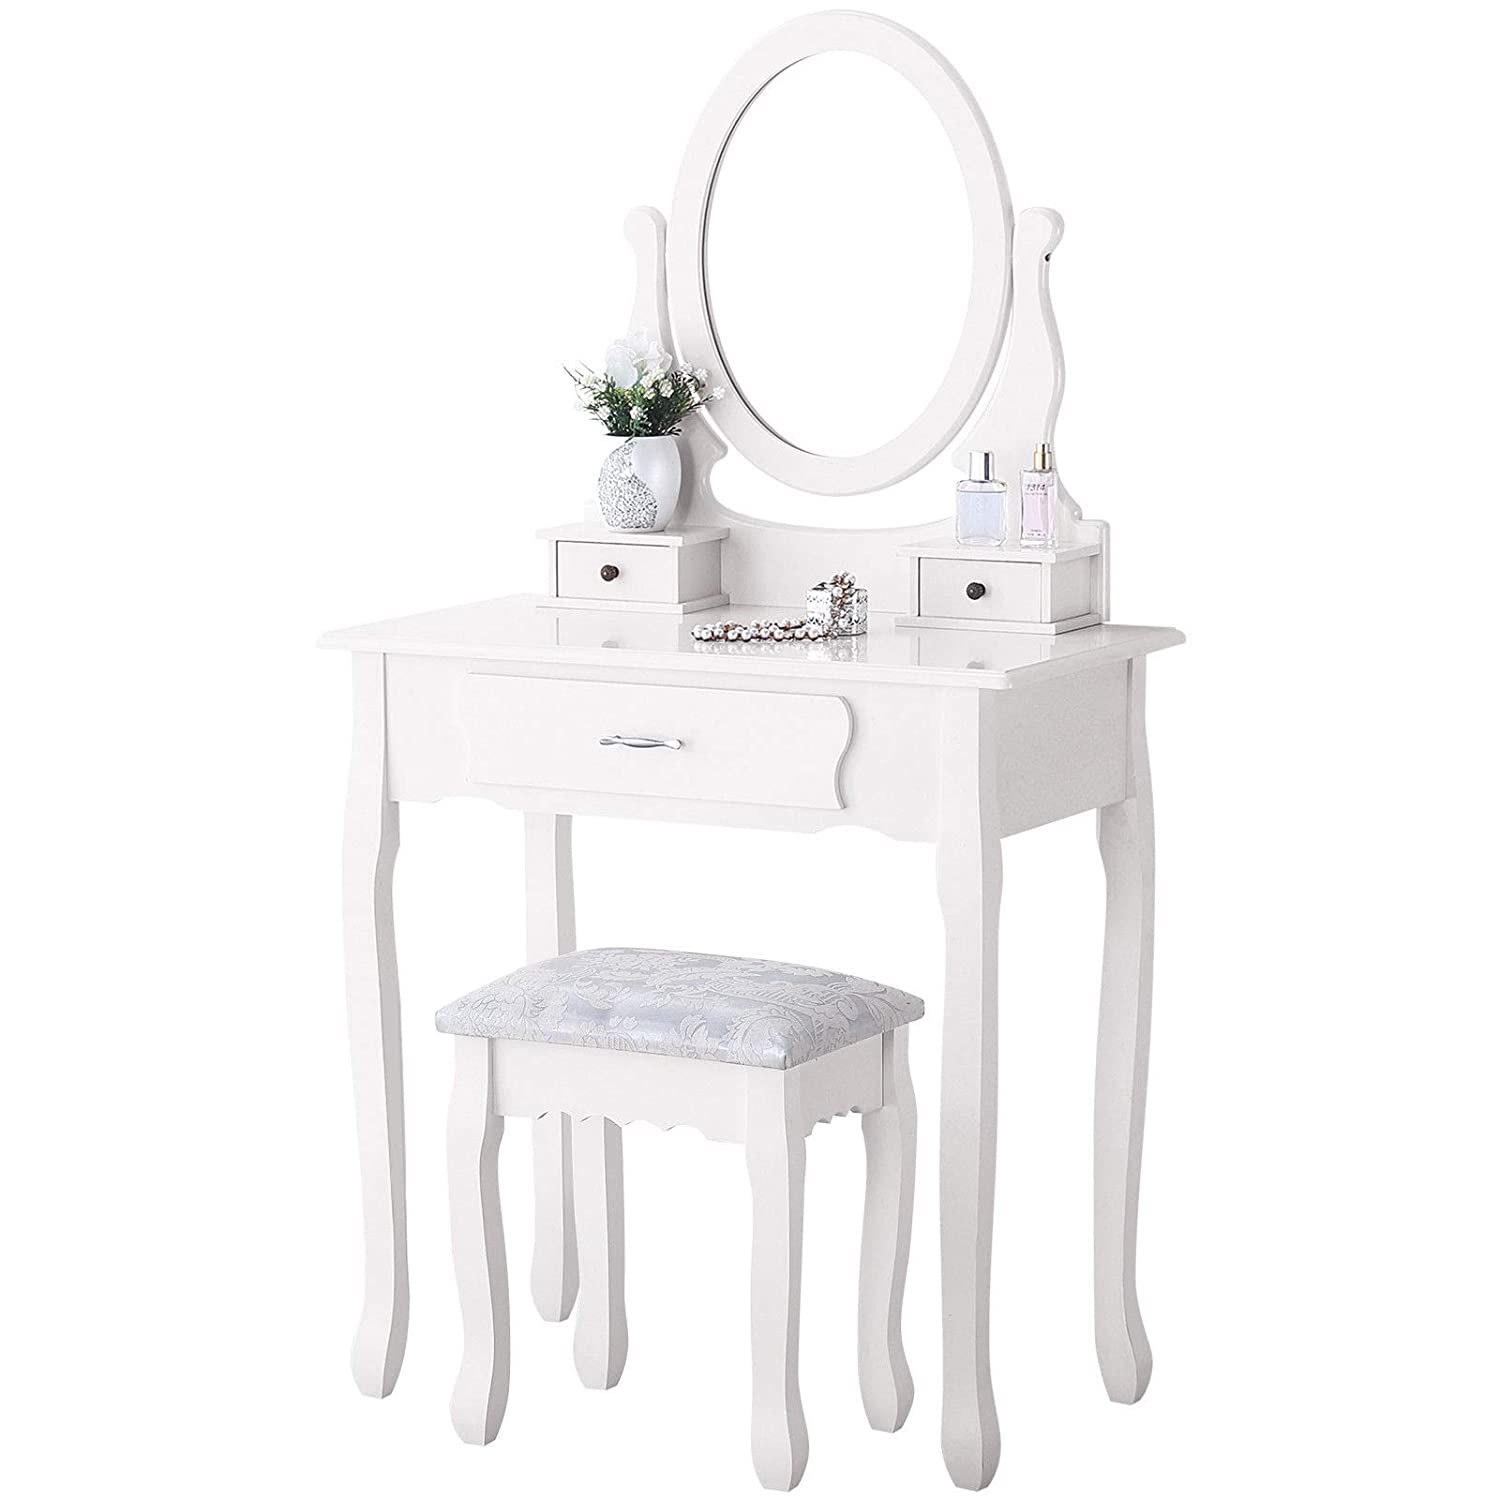 Amazon com vanity table setmake up dressing table with oval mirror 3 drawersbedroom vanity stool furniture white kitchen dining